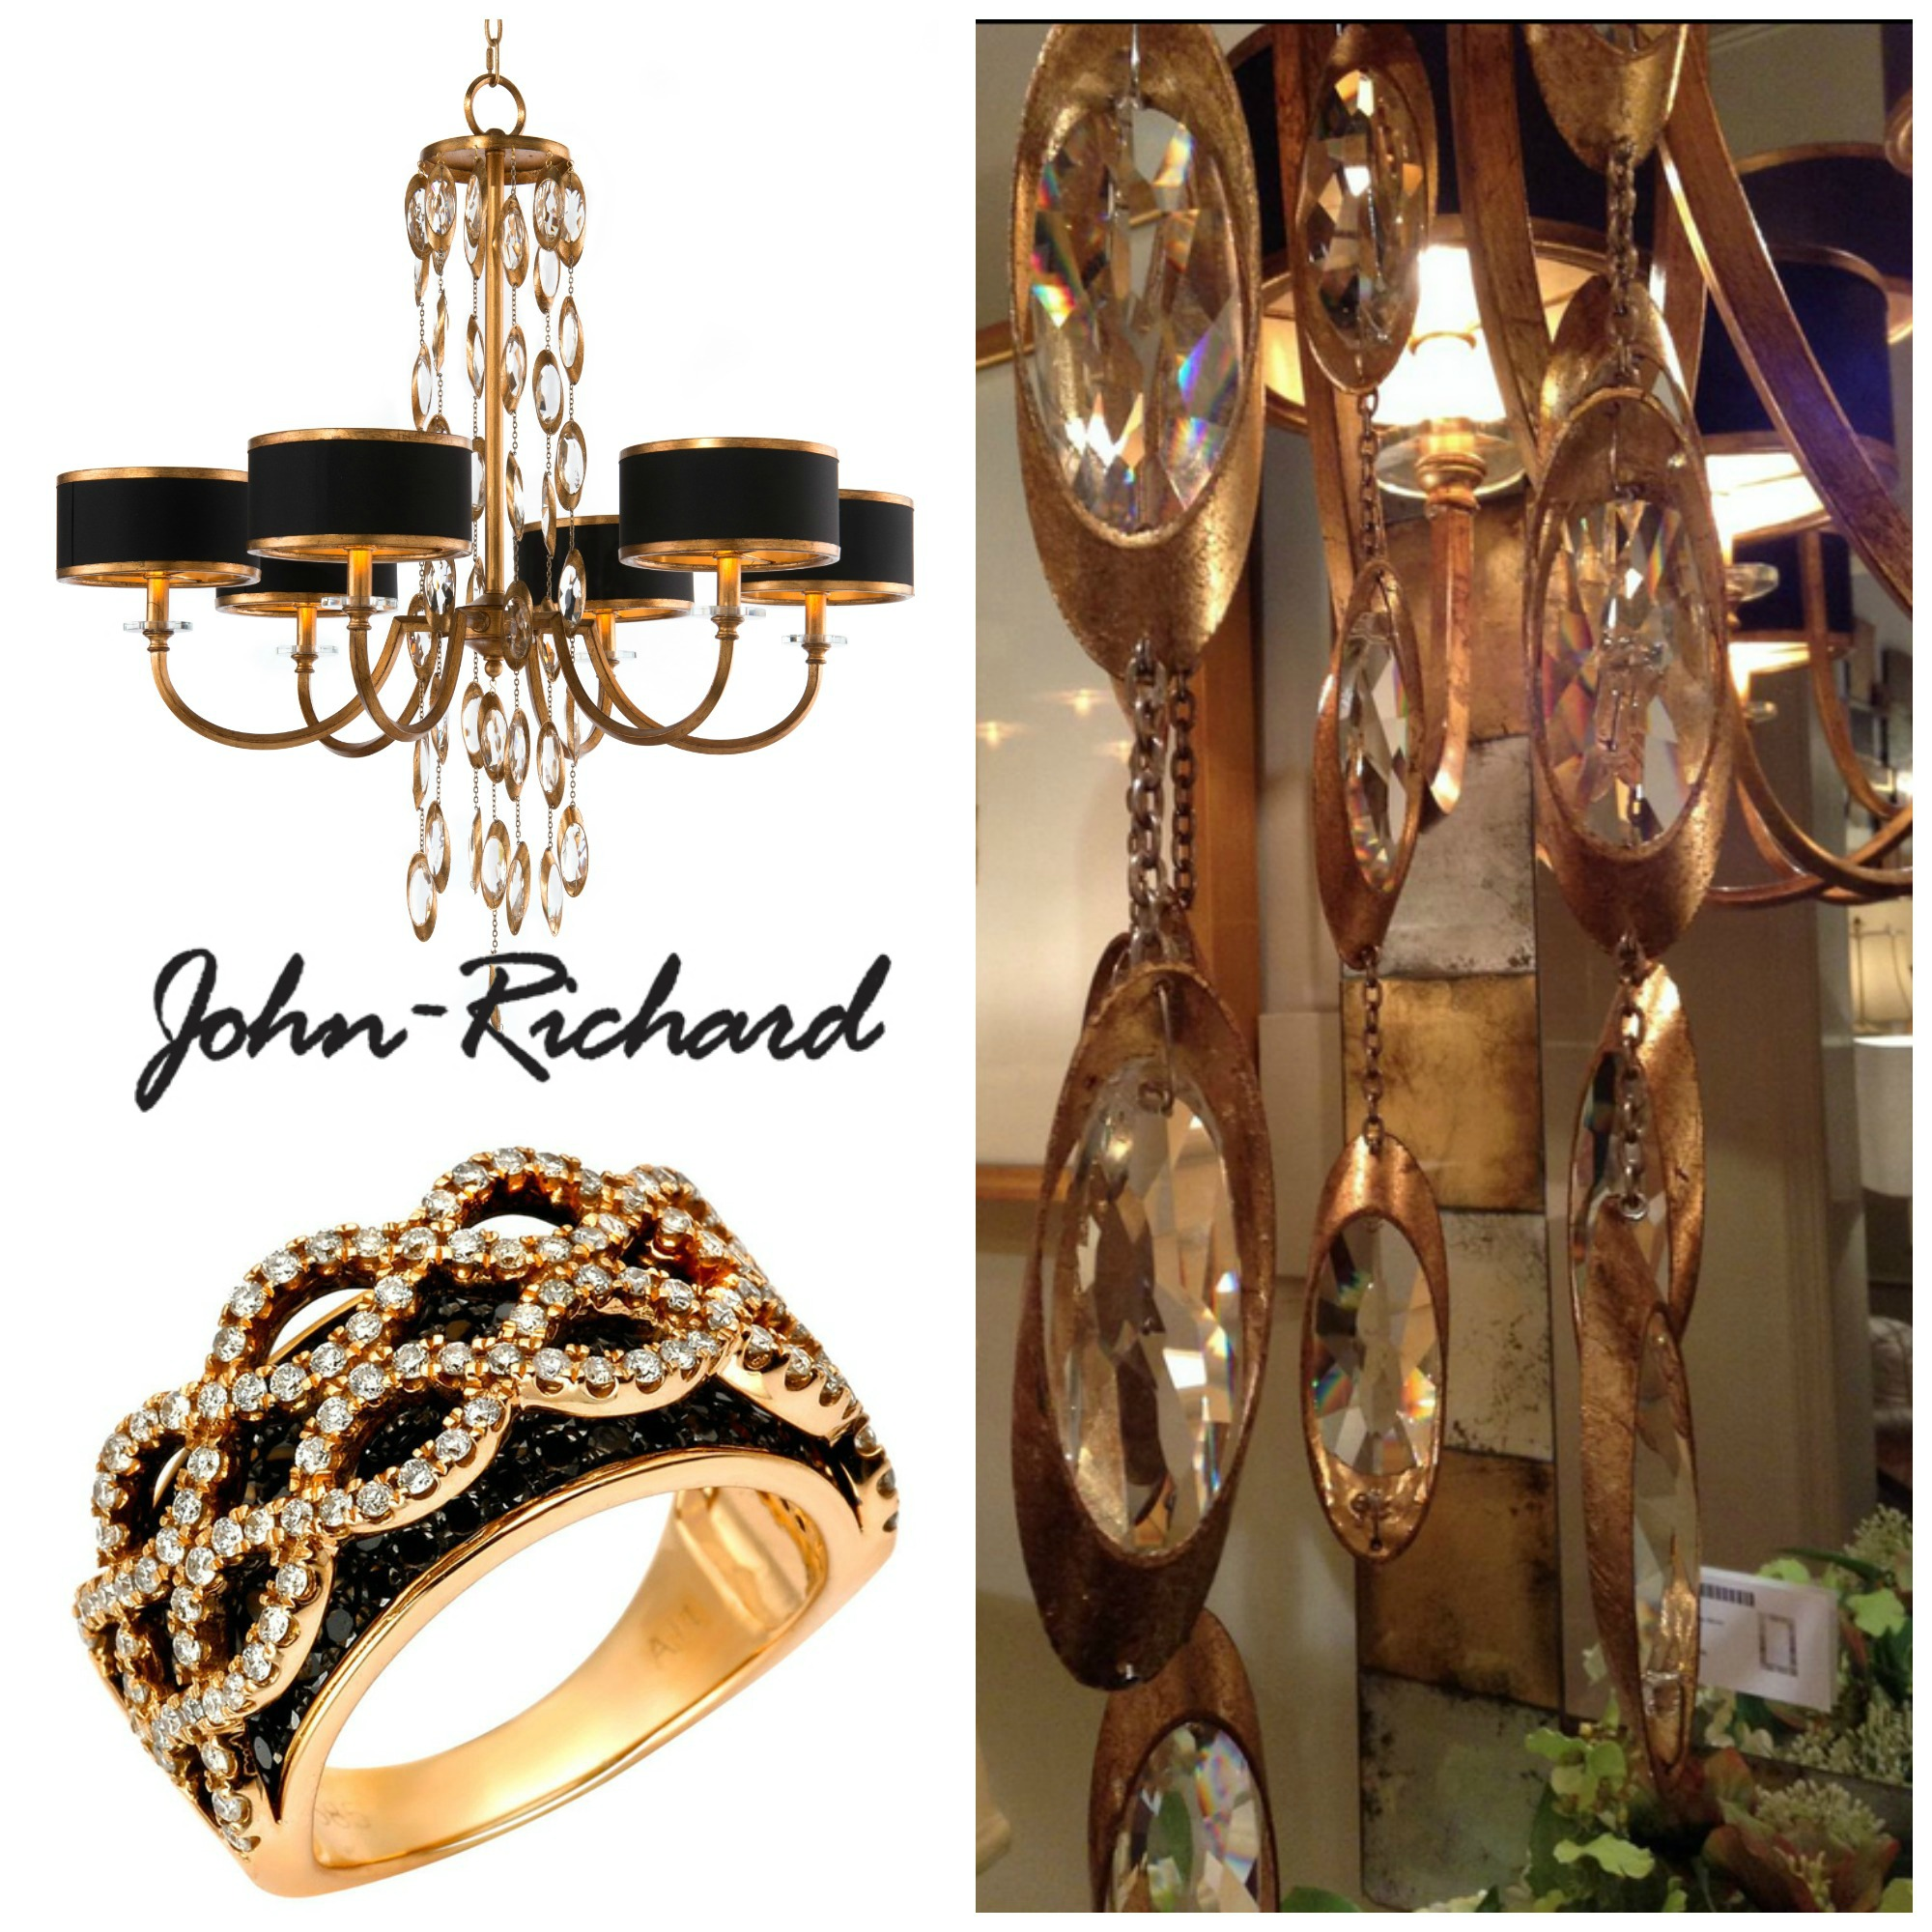 Lux Lighting Fashion The John Richard Collection